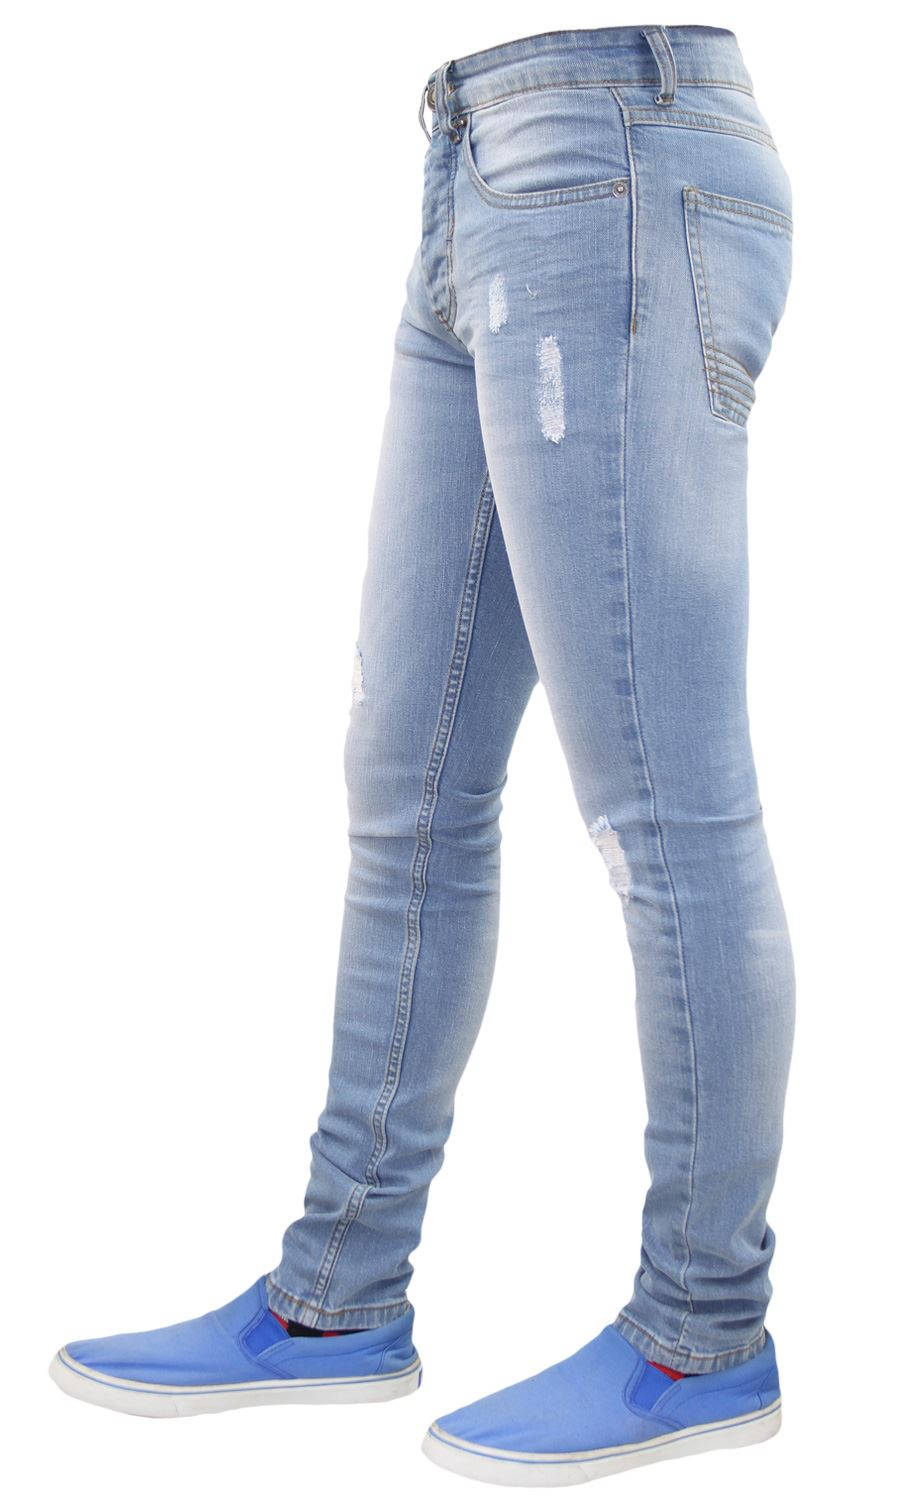 Mens-Skinny-Stretch-Ripped-Jeans-Slim-Fit-Casual-Trousers-Denim-Pants-All-Sizes thumbnail 14